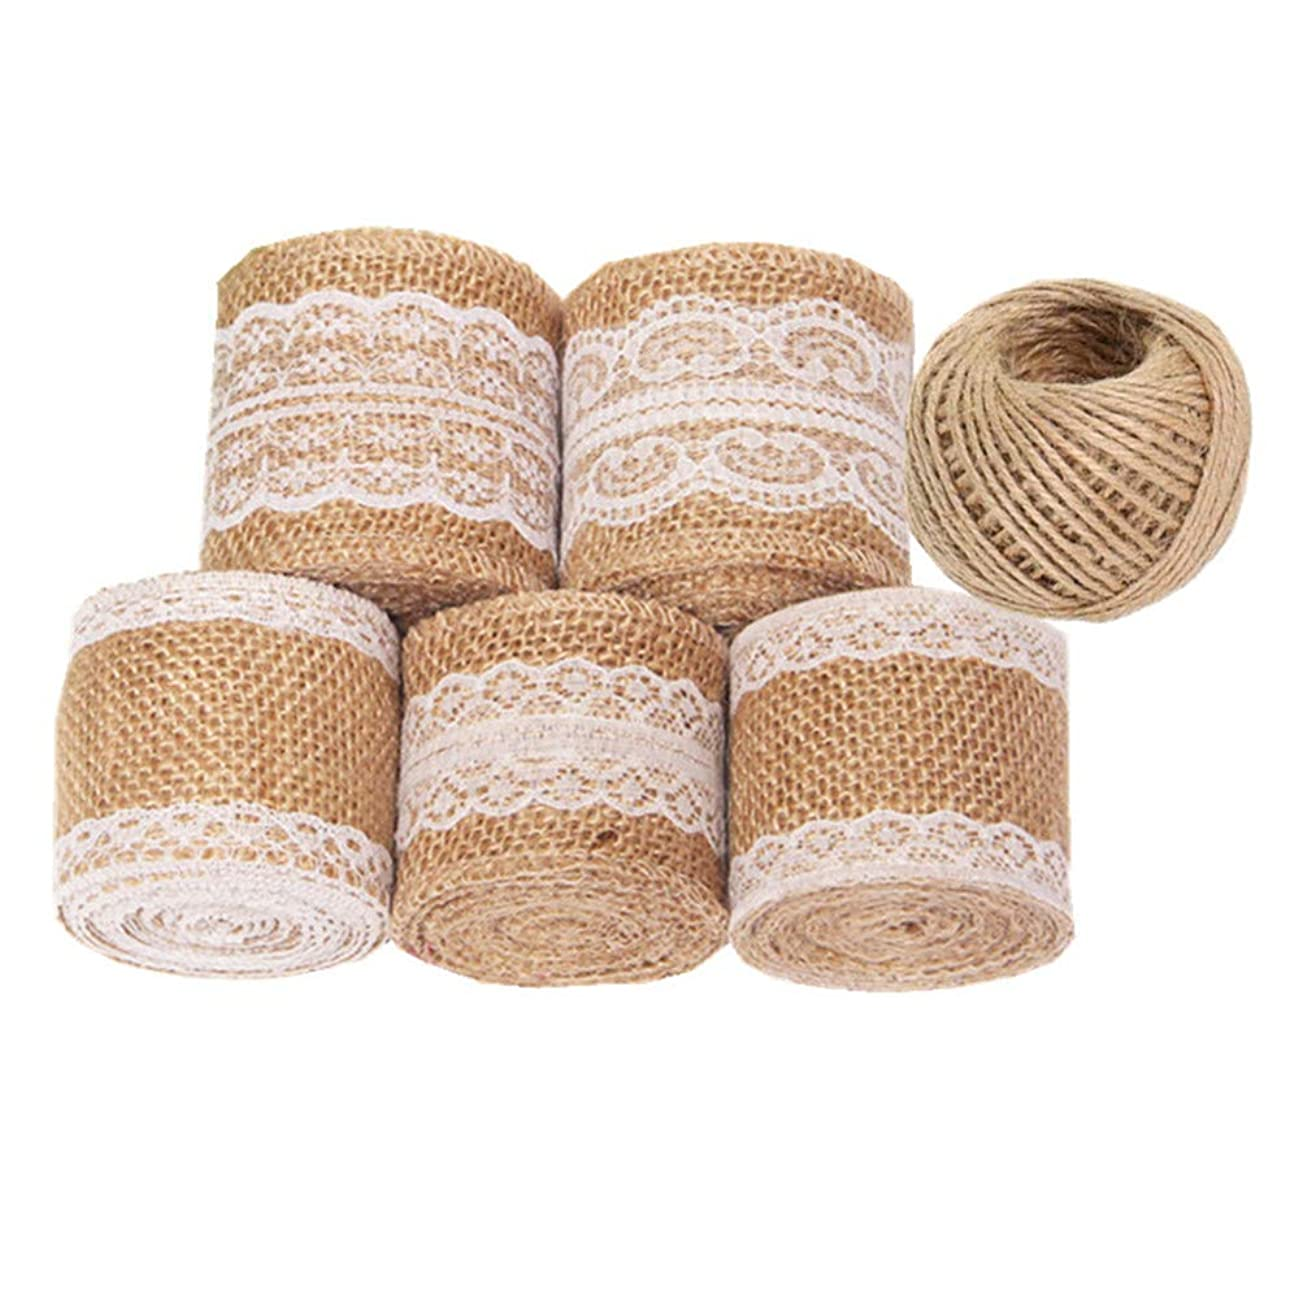 UUsave 11 Yards/396 inches Natural Burlap Ribbon with Lace and 130 Feet Jute Twine for DIY Handmade Wedding Crafts Lace Linen Fabric Ribbon Roll Trims for Wedding Decorations Lace Arts and Crafts (6)